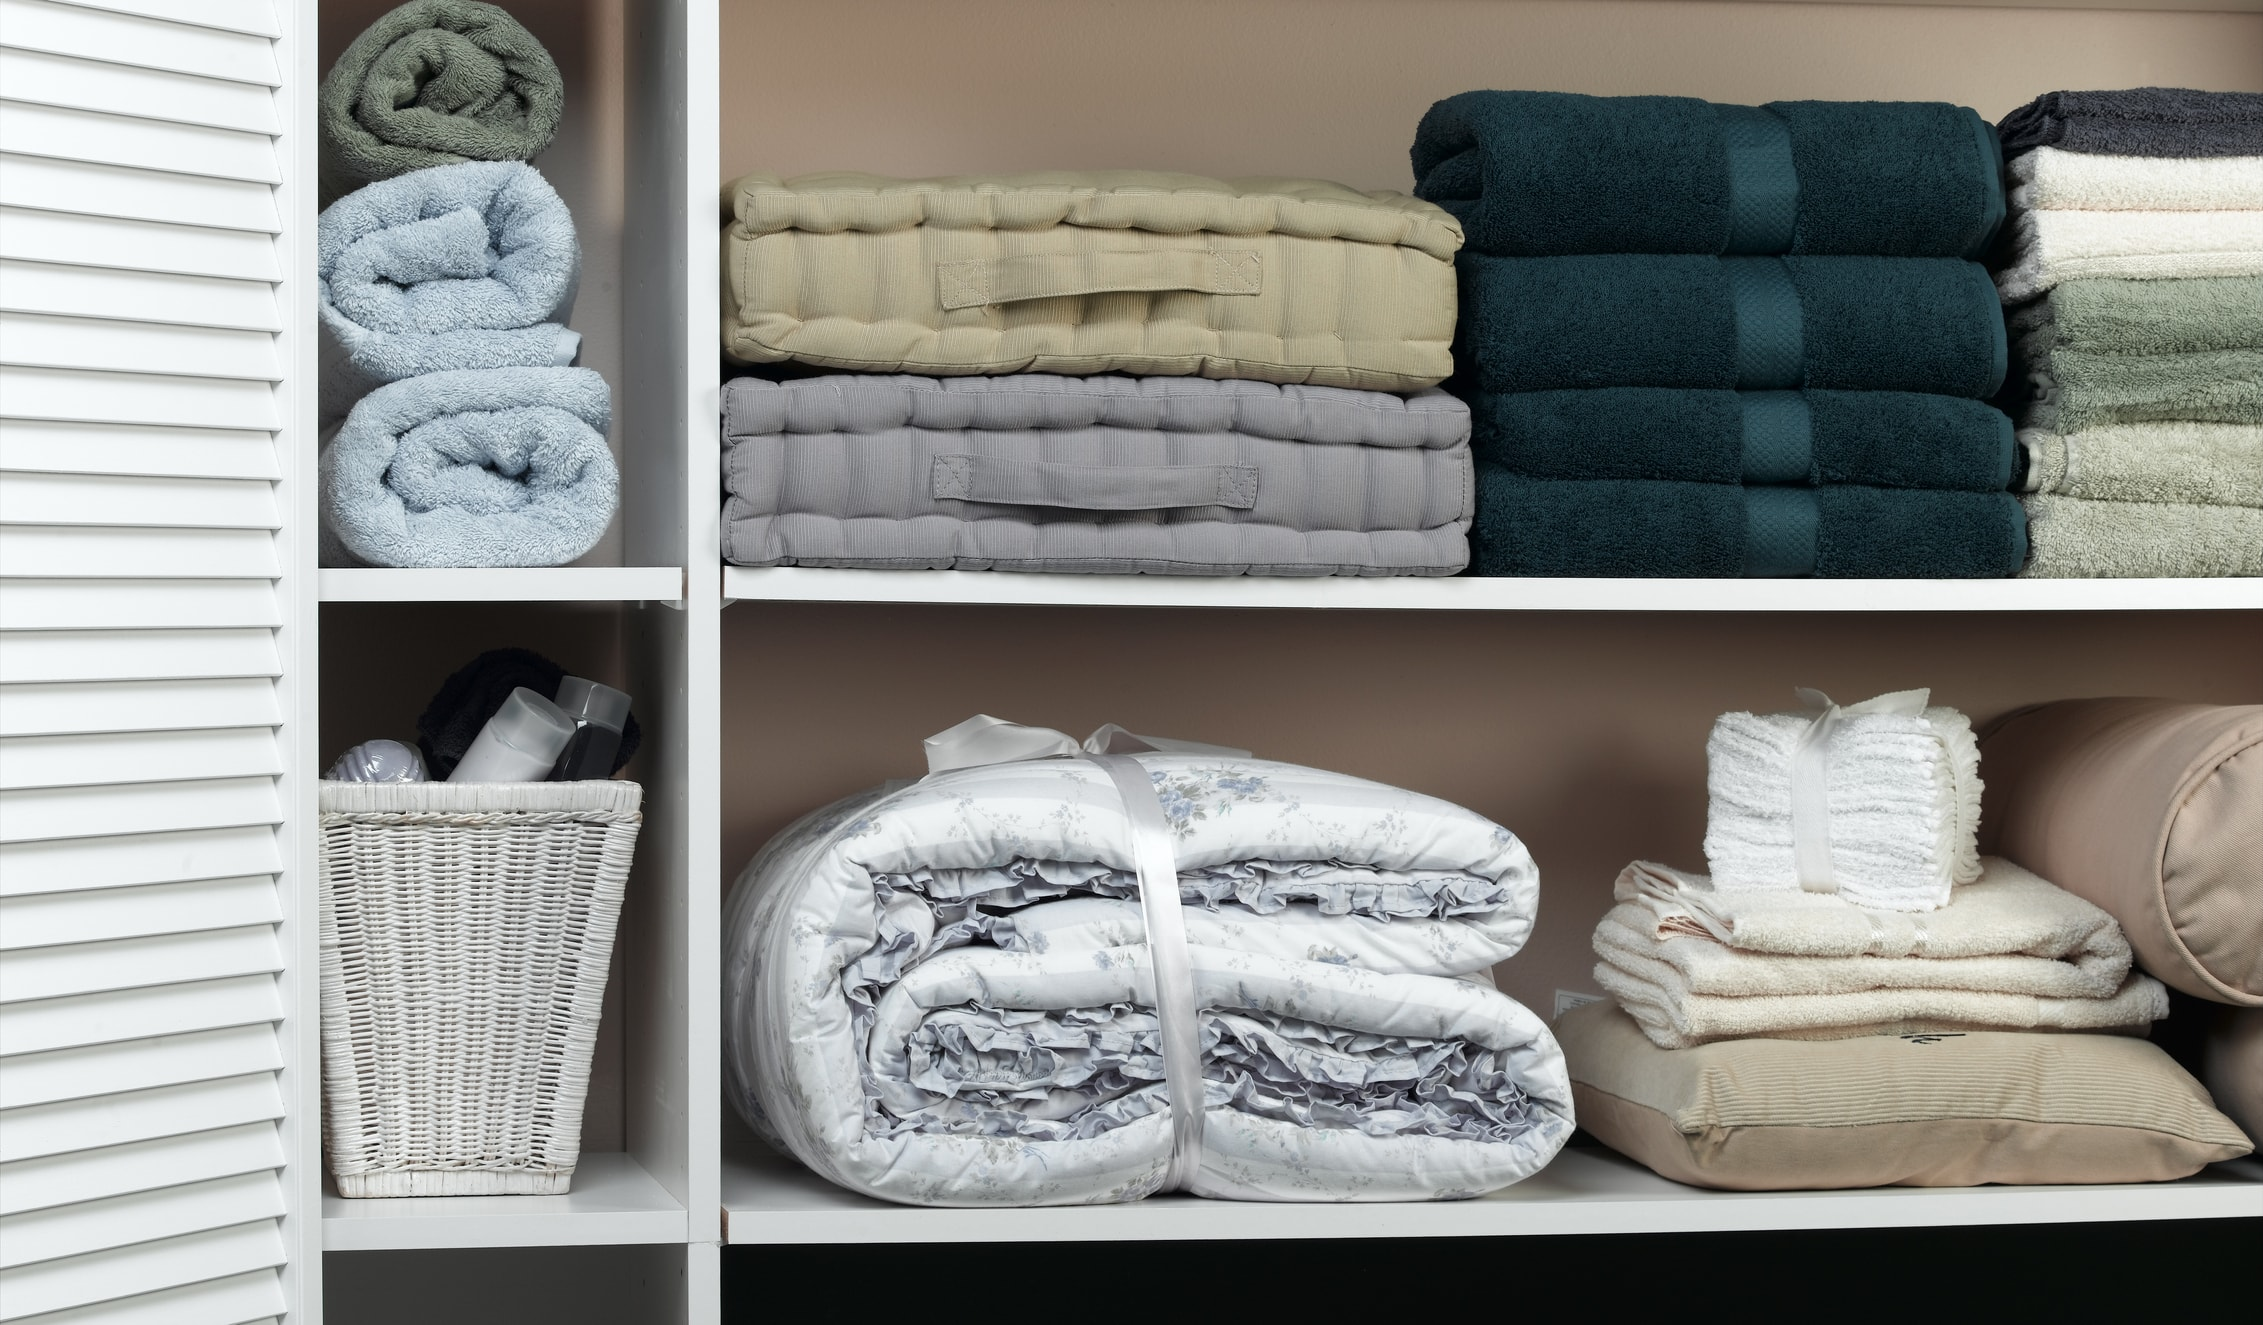 11 Home Organization Tips That Will Make Your Life Easier